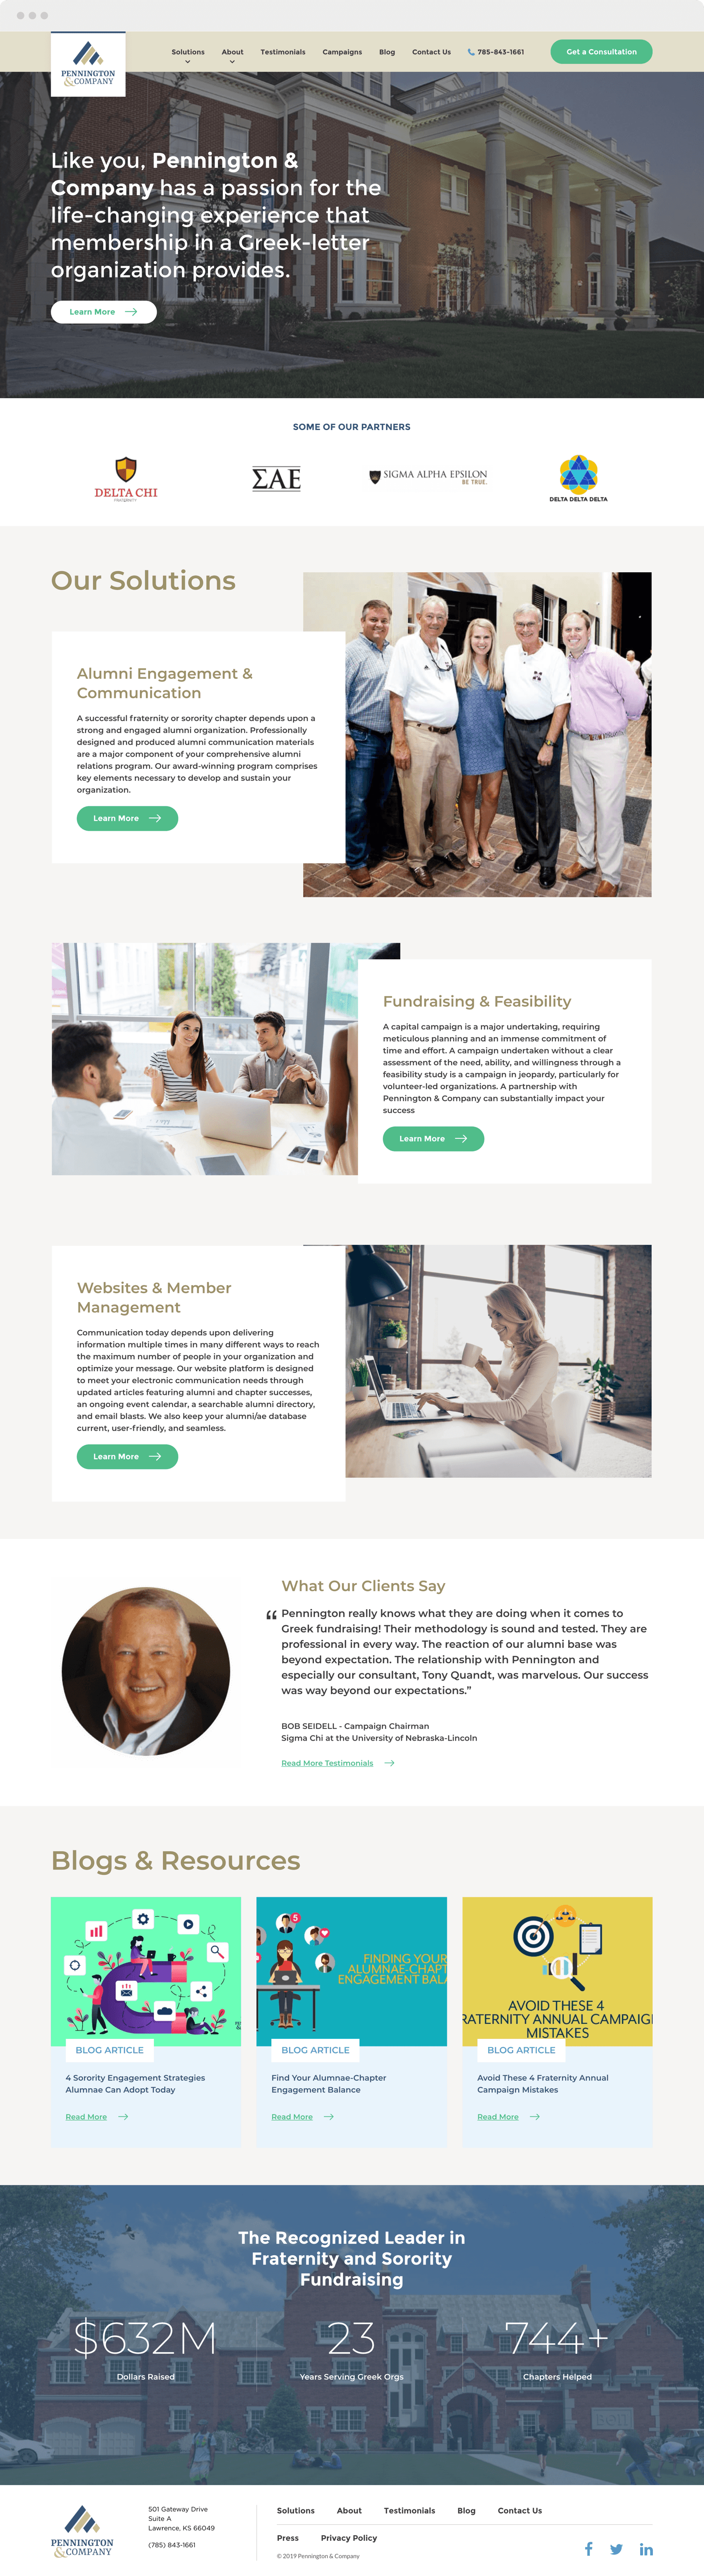 Homepage Design for Pennington and Company